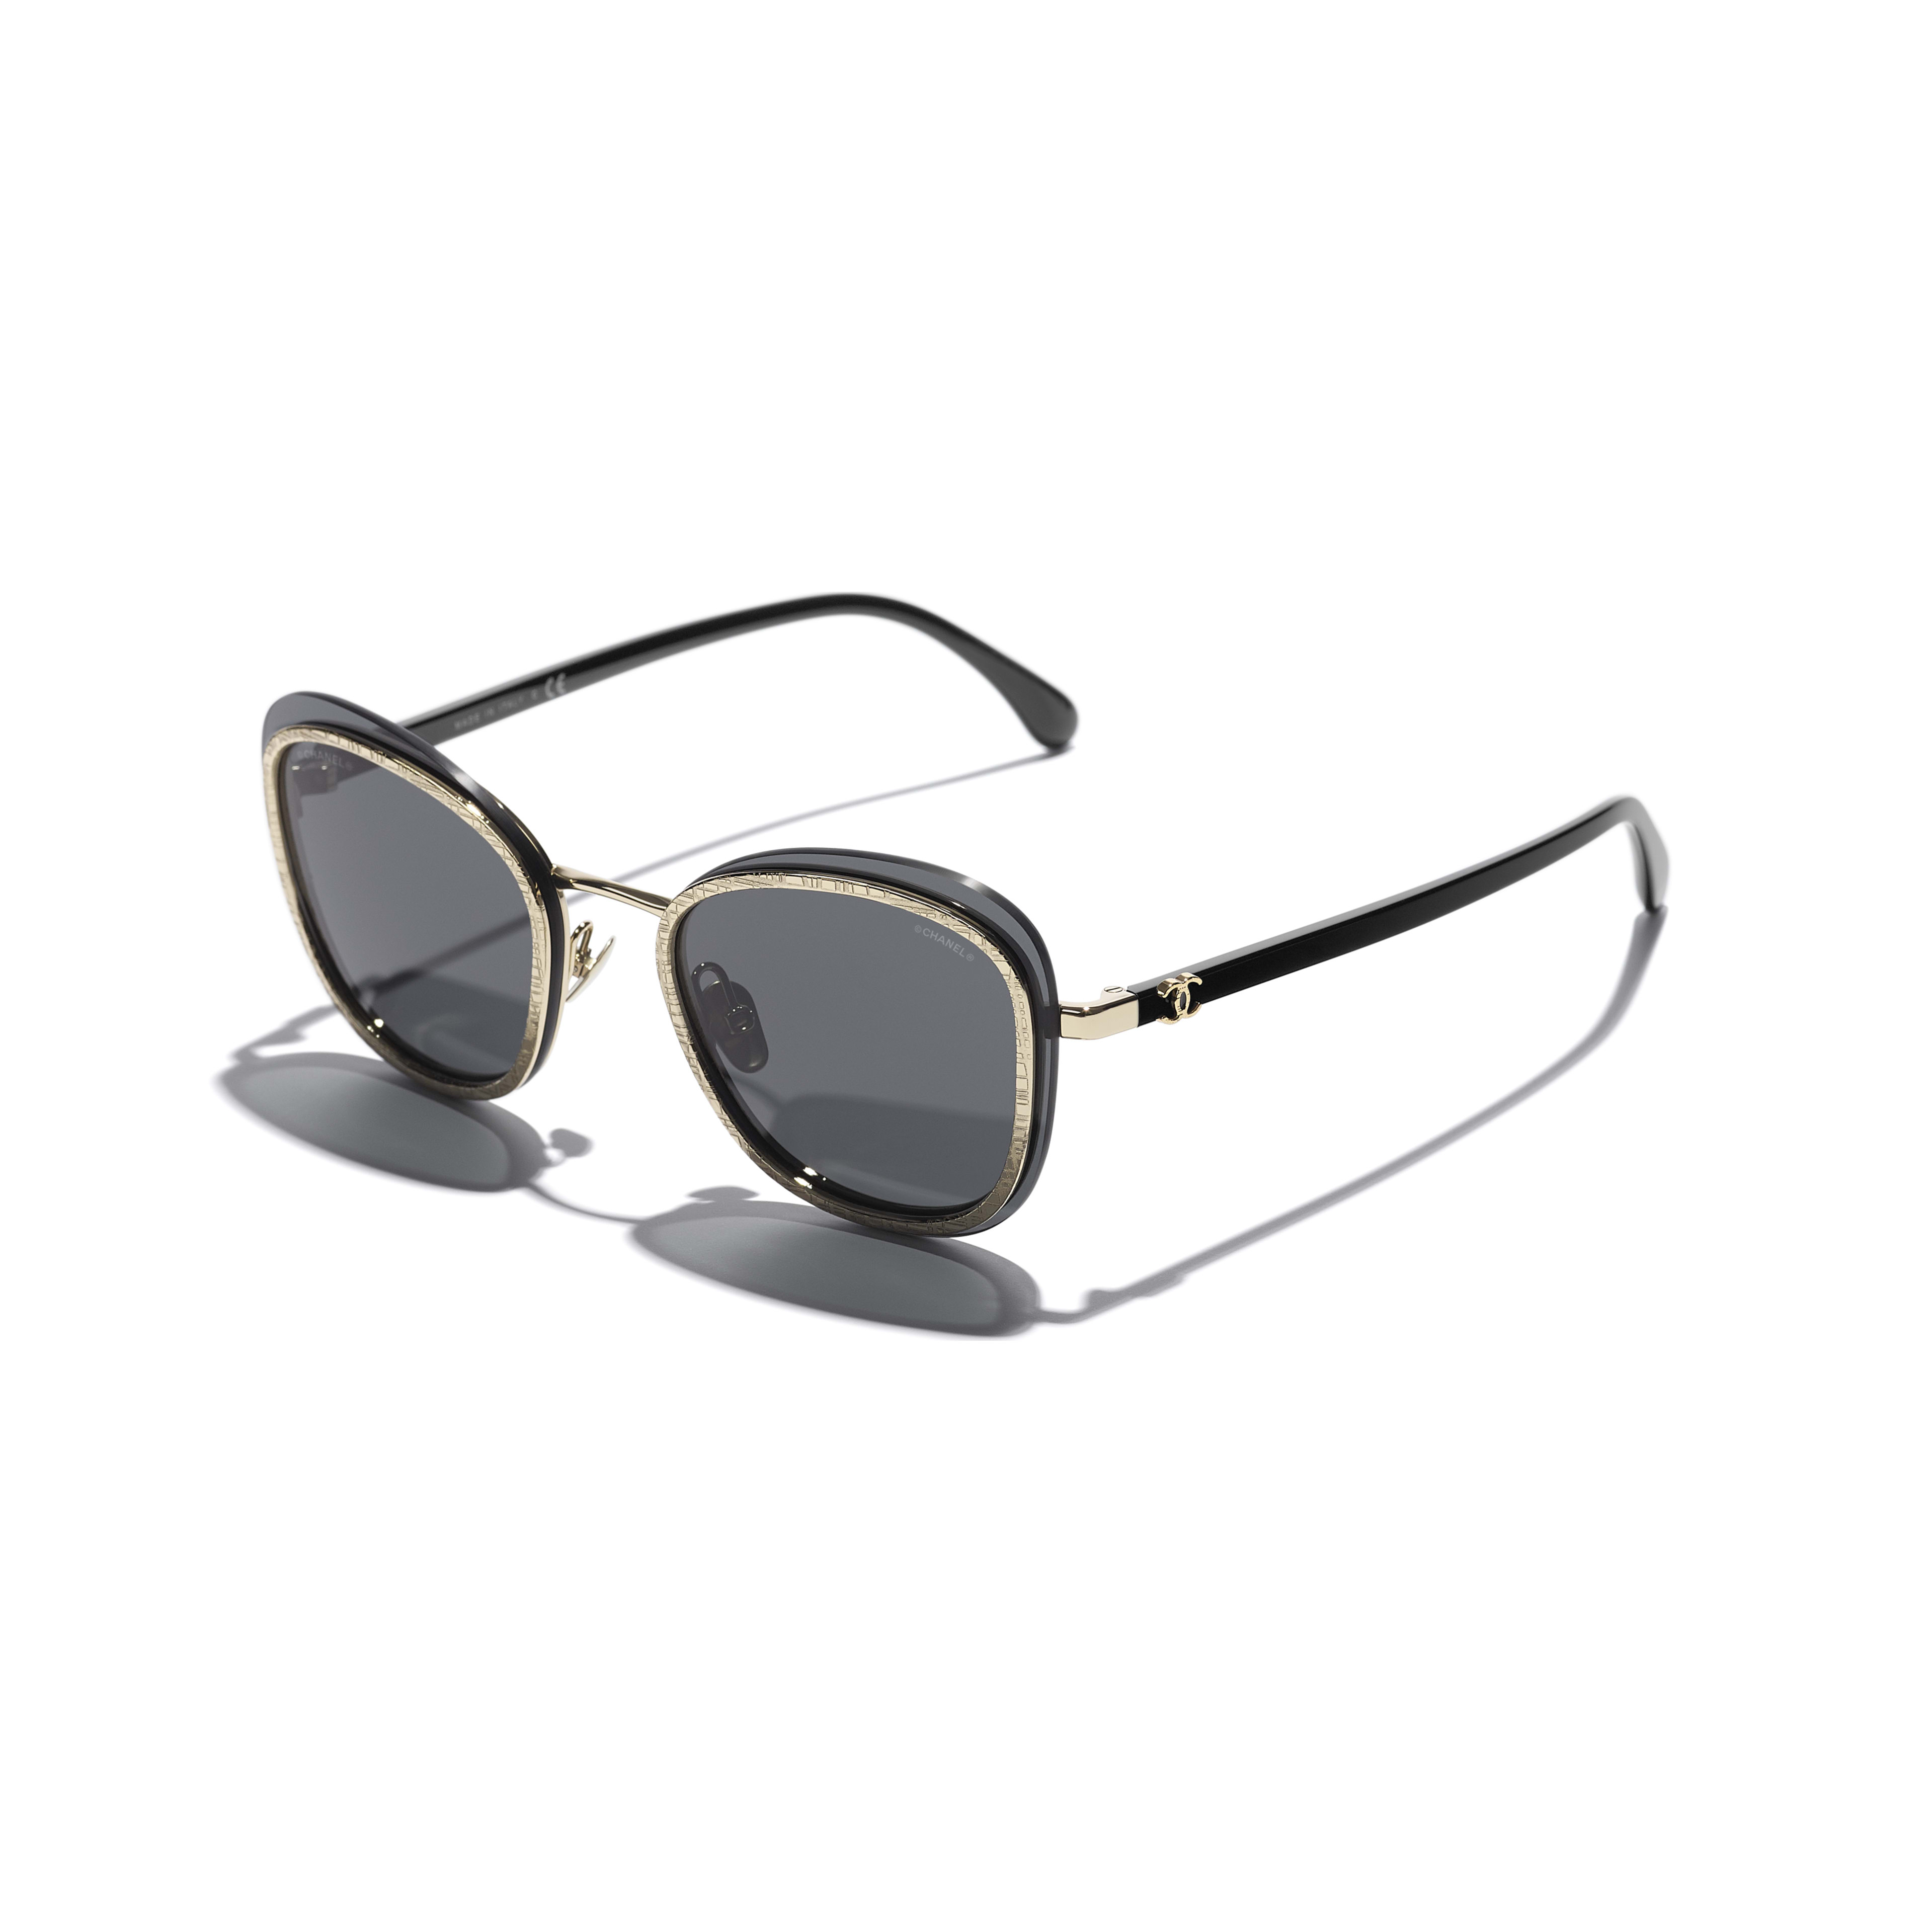 Pantos Sunglasses - Black & Gold - Acetate & Metal - CHANEL - Extra view - see standard sized version